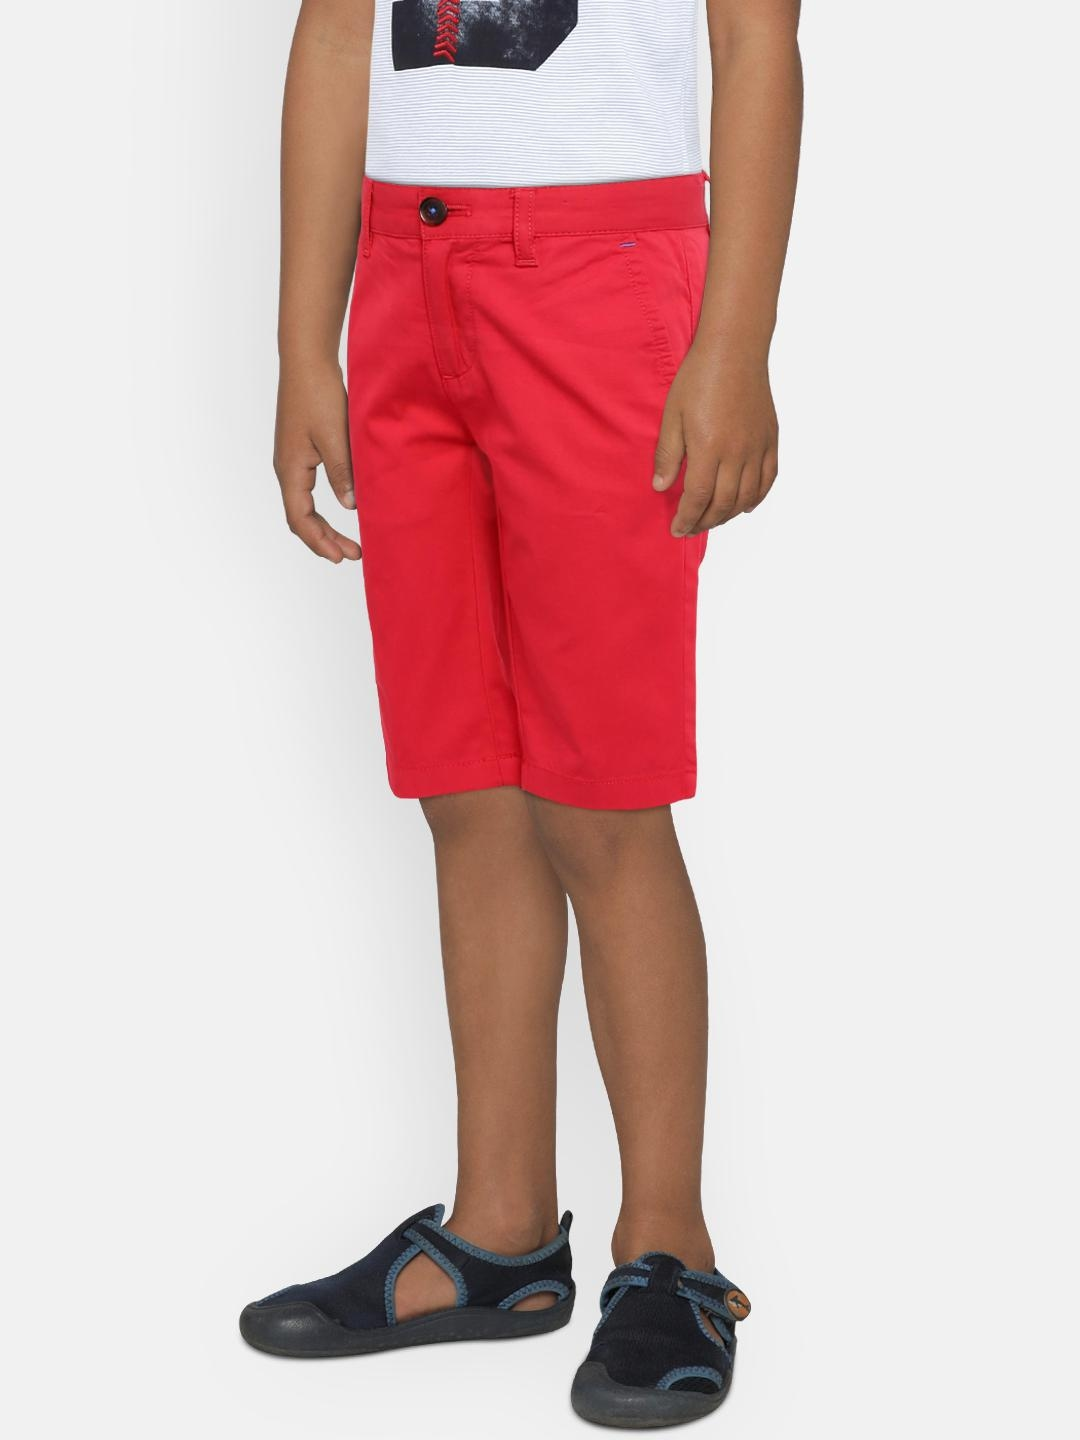 3224ff57 Buy Indian Terrain Boys Red Solid Regular Fit Regular Shorts ...